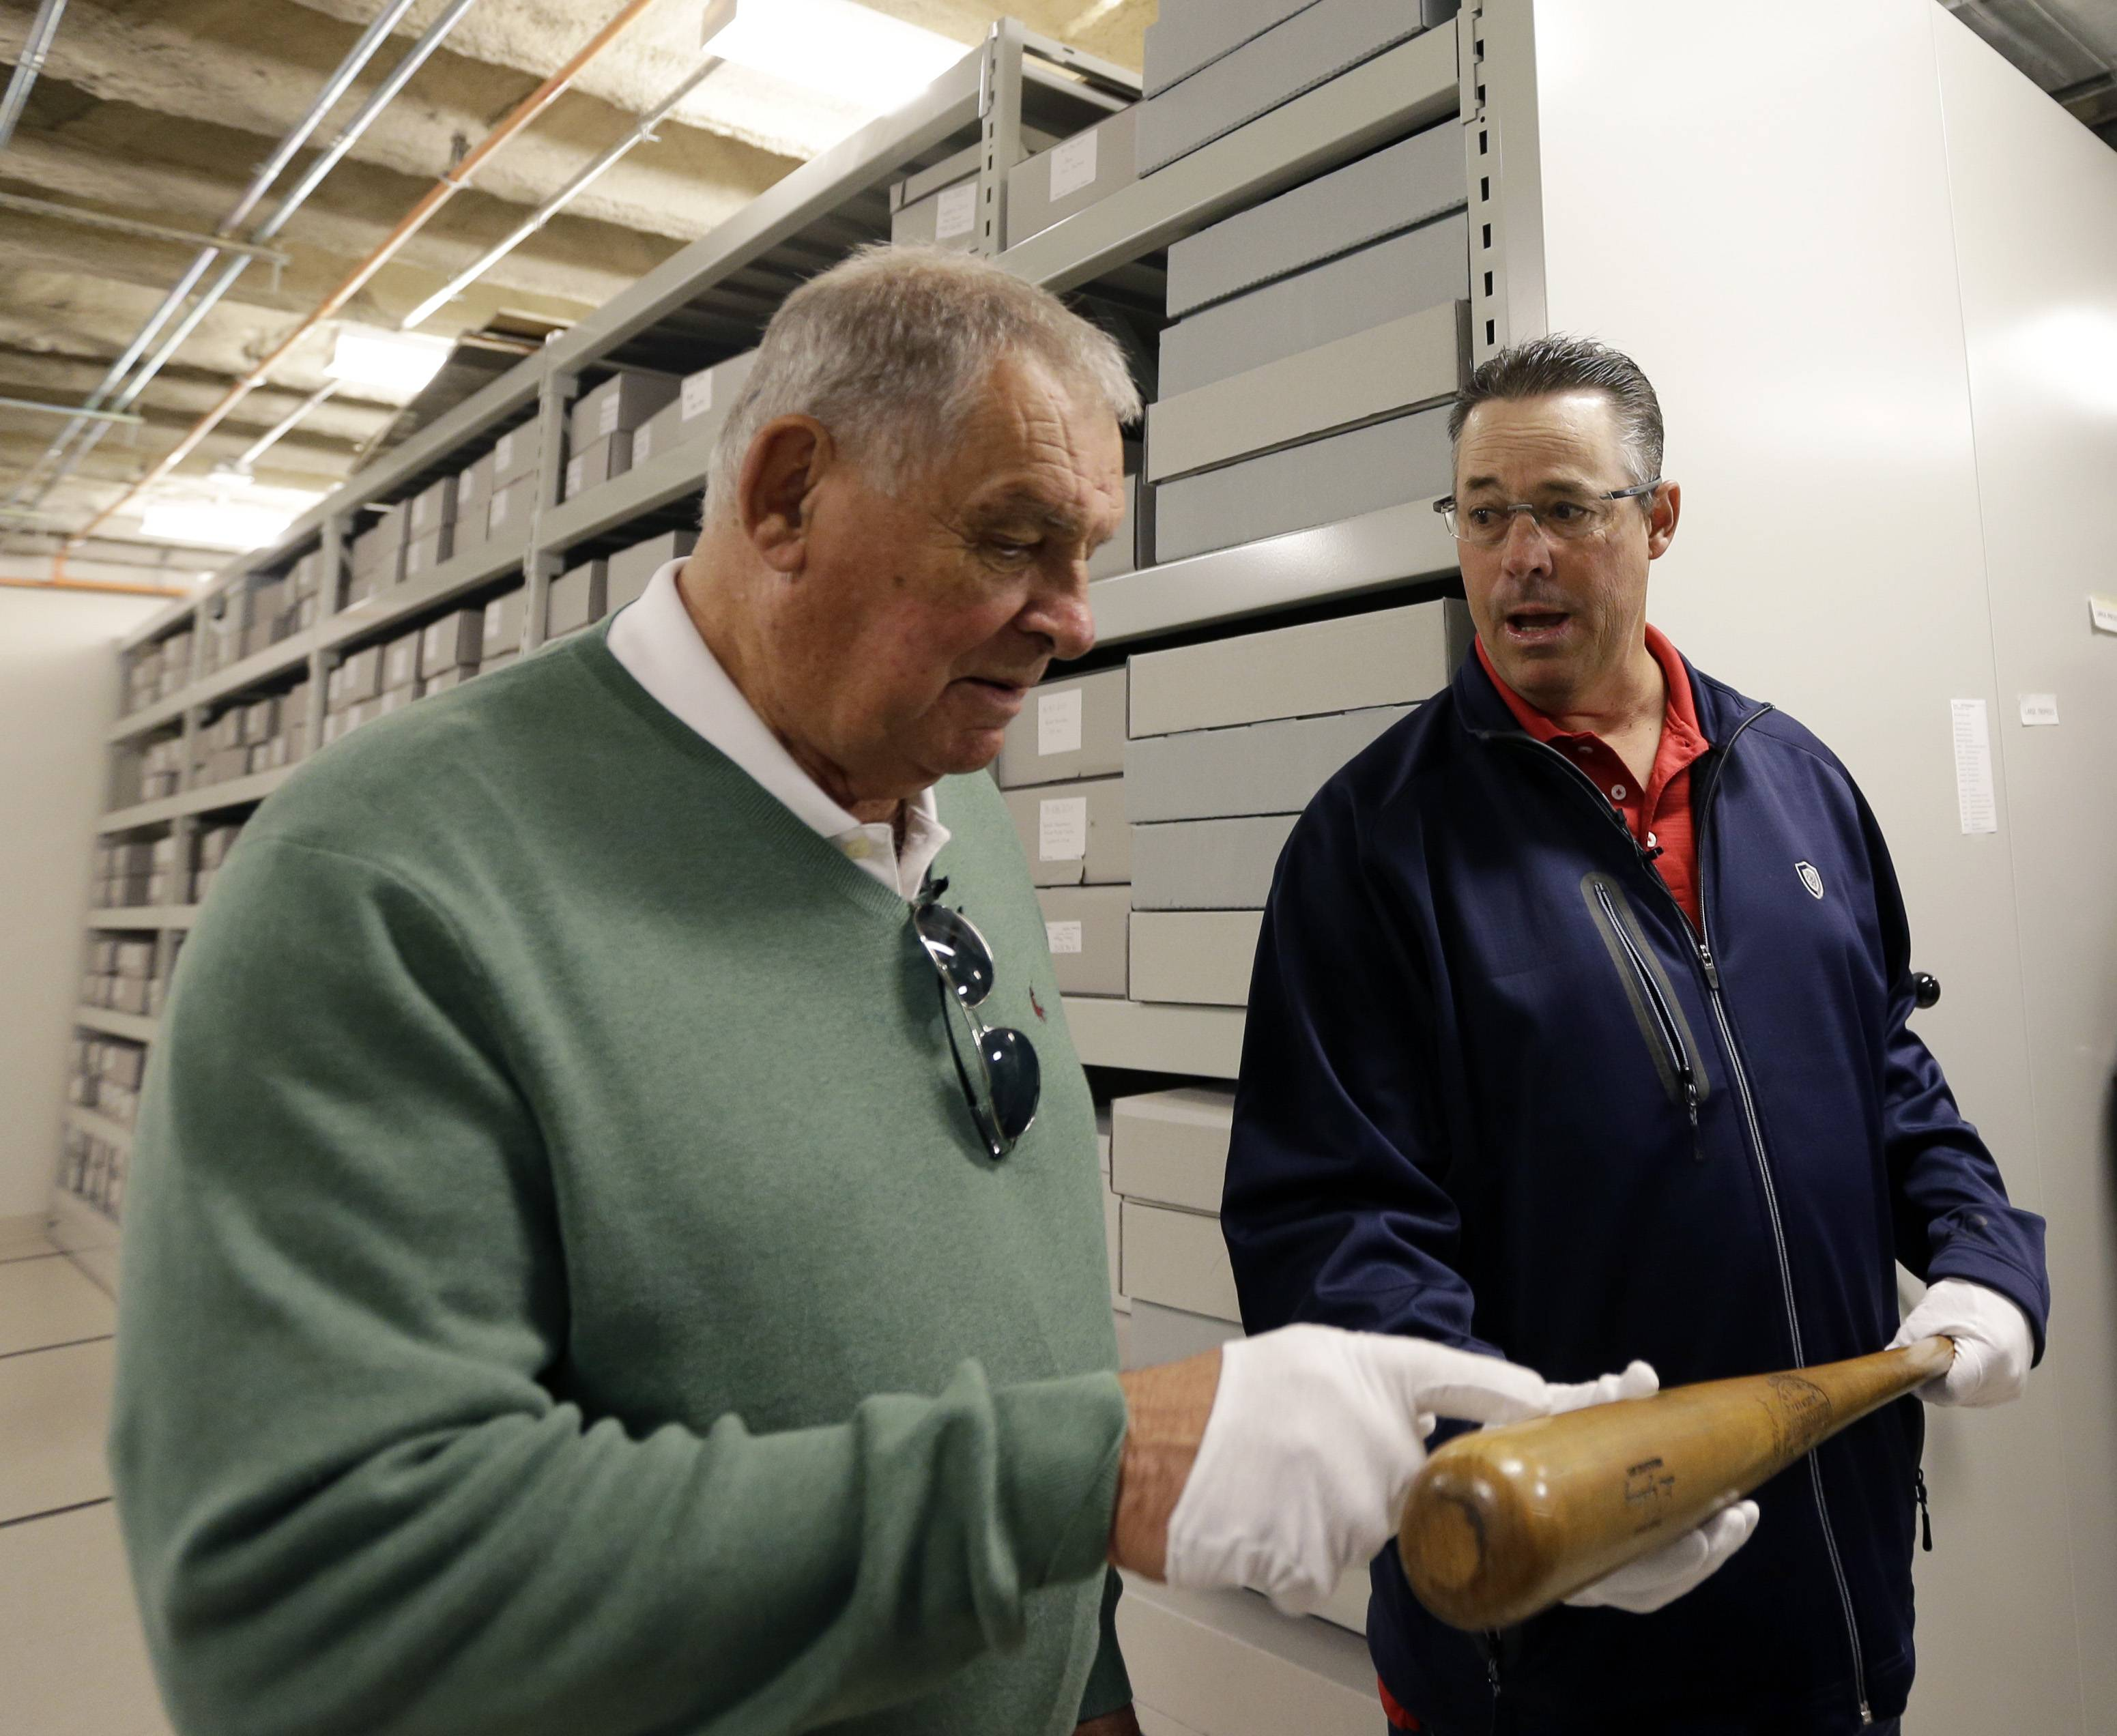 Former Atlanta Braves manager Bobby Cox, left, and former pitcher Greg Maddux hold a Lou Gehrig bat during their orientation visit at the Baseball Hall of Fame on Monday, March 24, 2014, in Cooperstown, N.Y. They will be inducted to the hall in July. (AP Photo/Mike Groll)